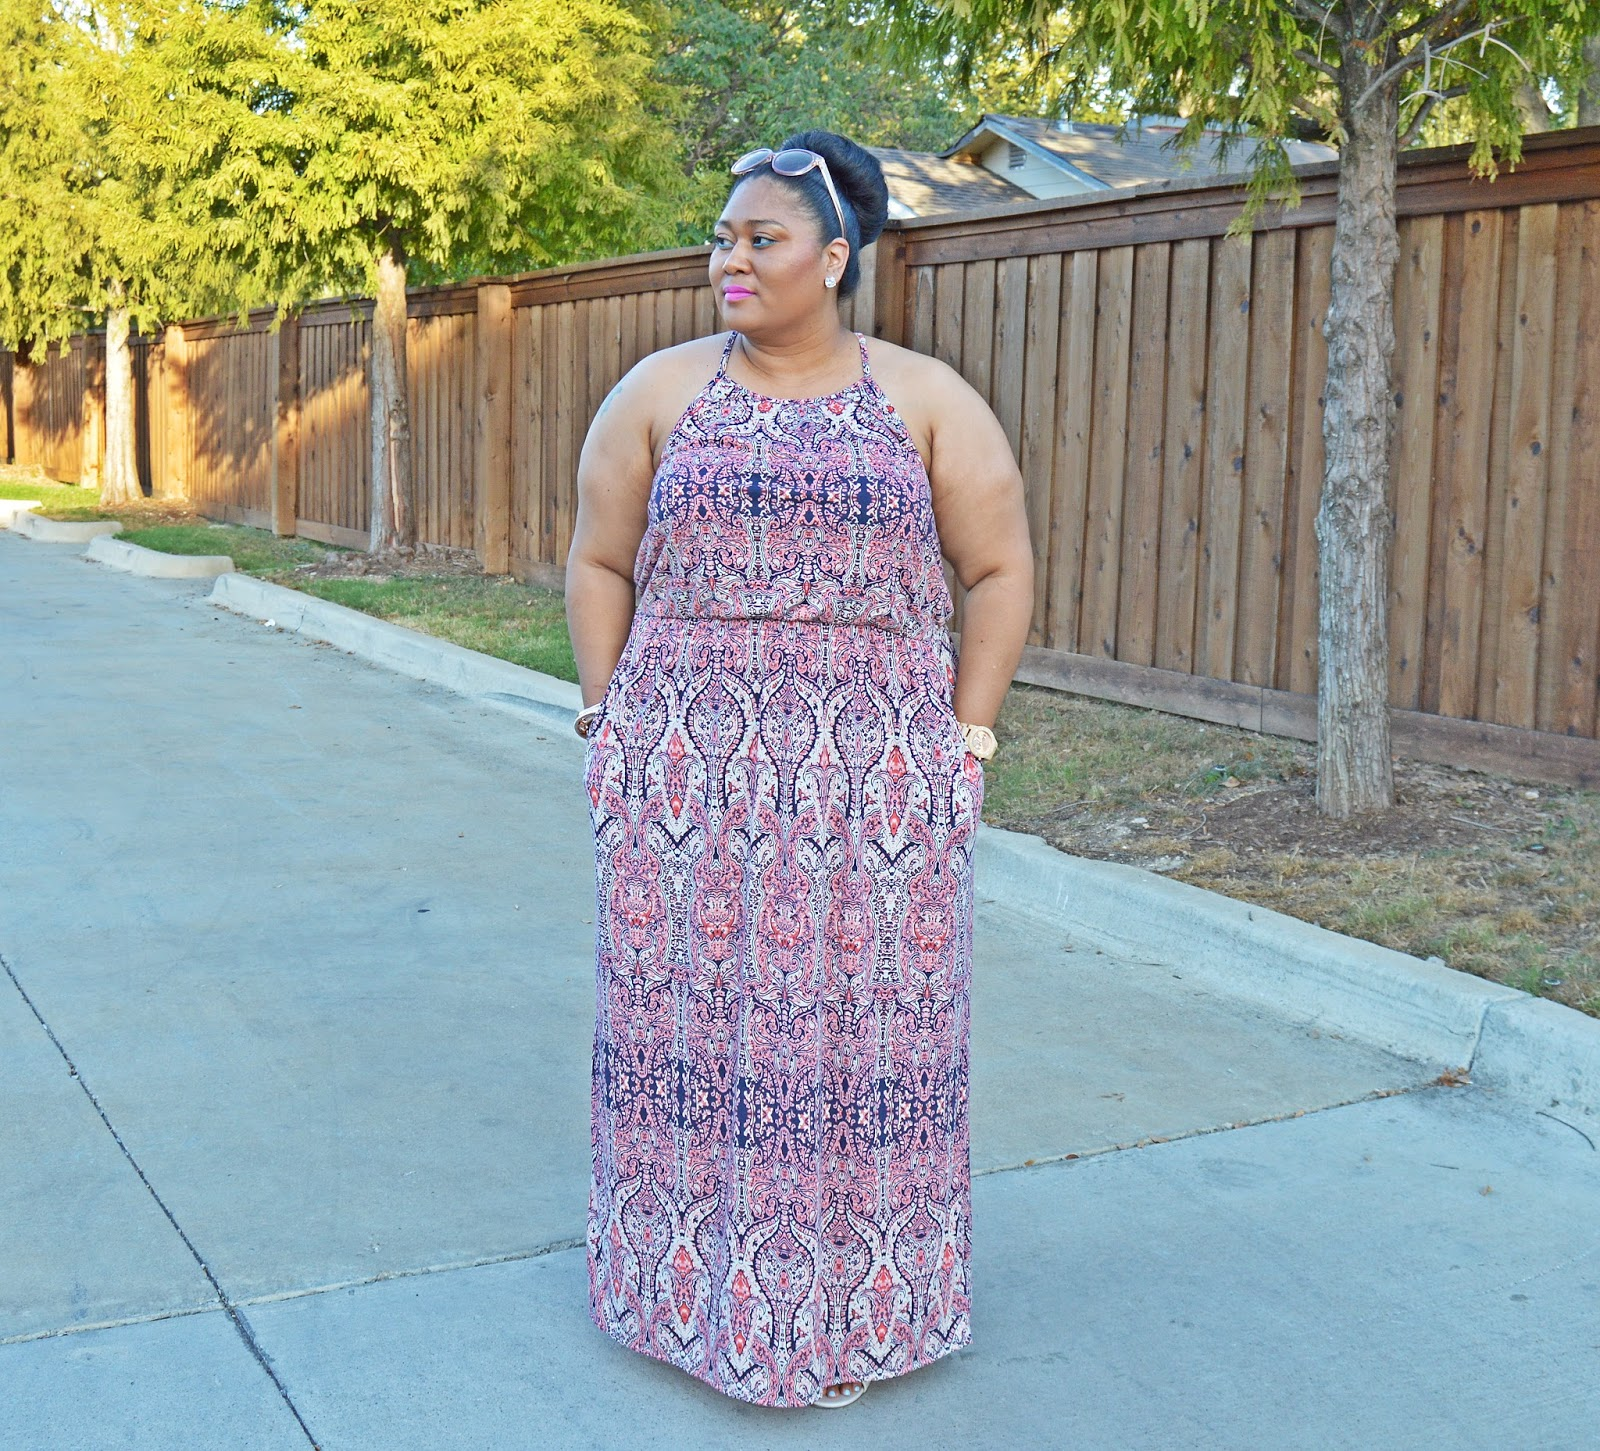 b51207dda7 MAXIMIZE YOUR SUMMER WITH A MAURICES MAXI DRESS